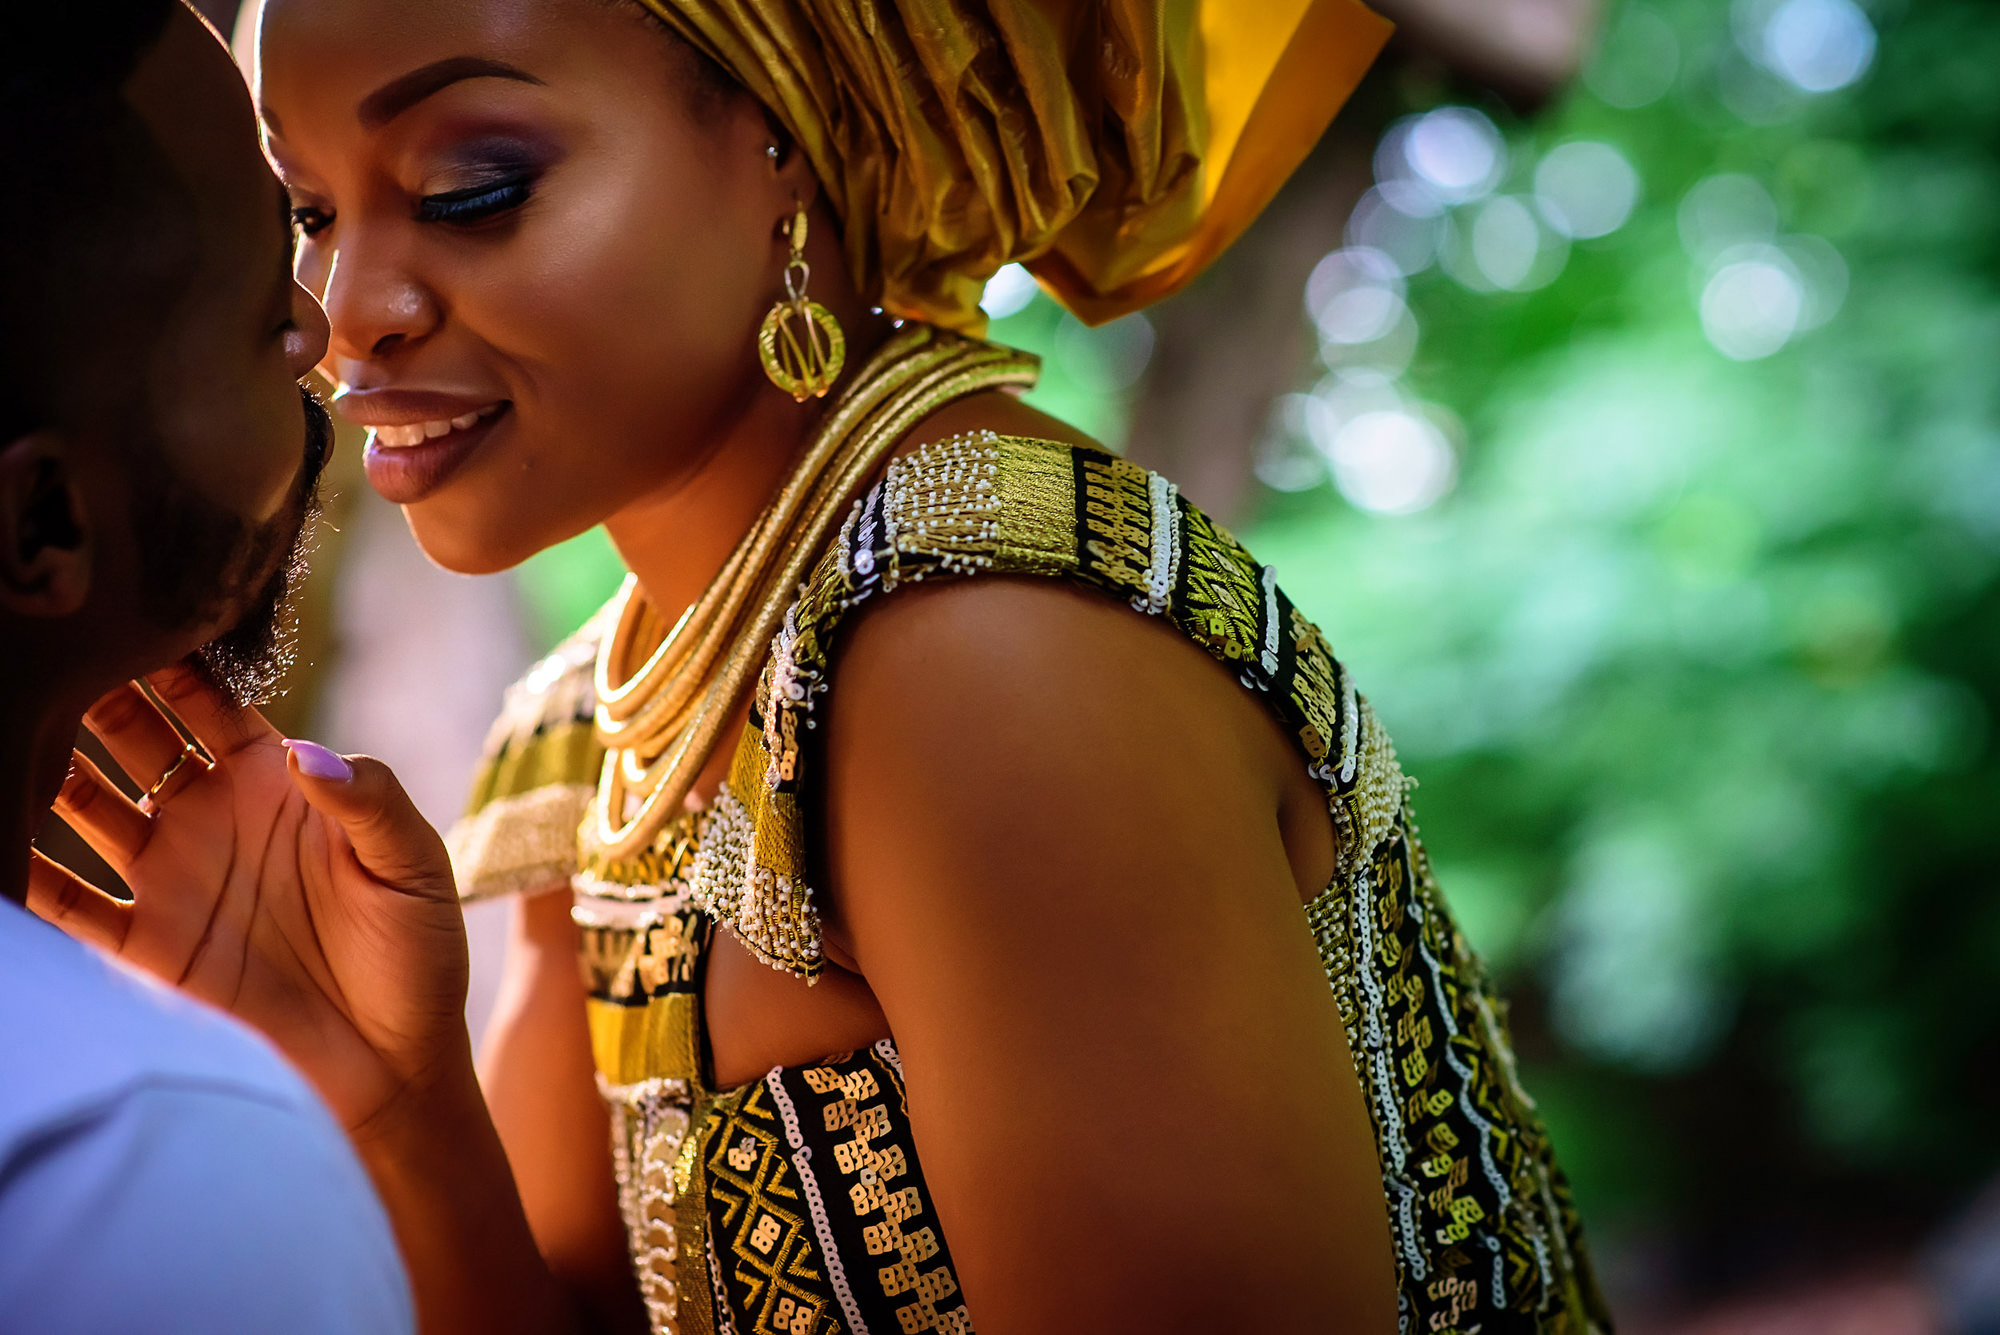 Bride in beaded African wedding dress - photo by Jide Alakija